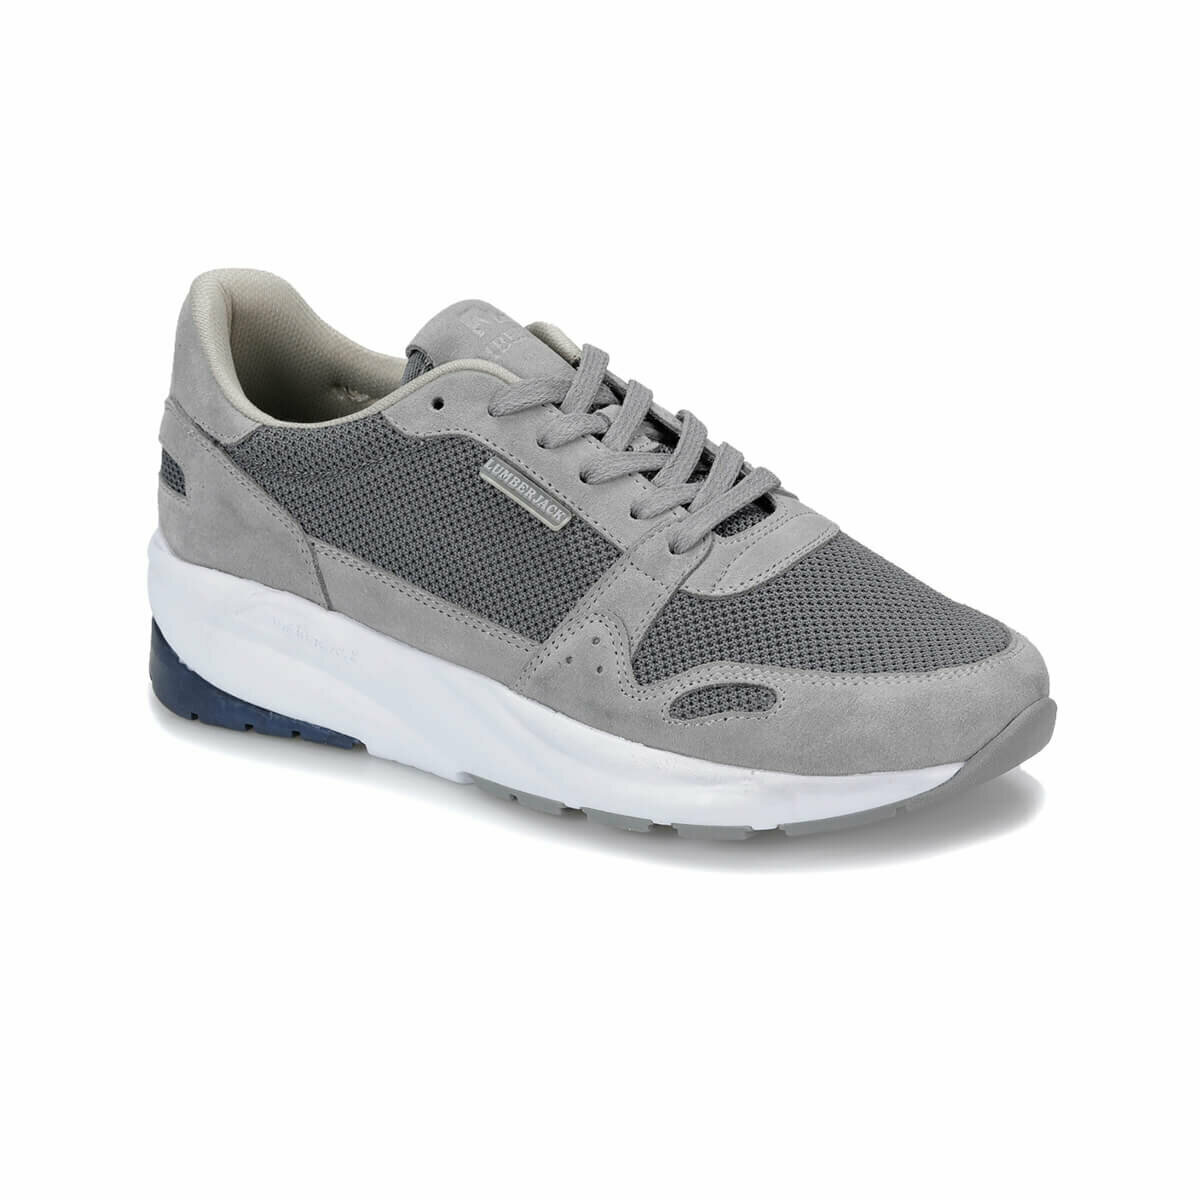 FLO Gray Men's Sneaker Shoes Casual Shoes Men LUMBERJACK GILBERT